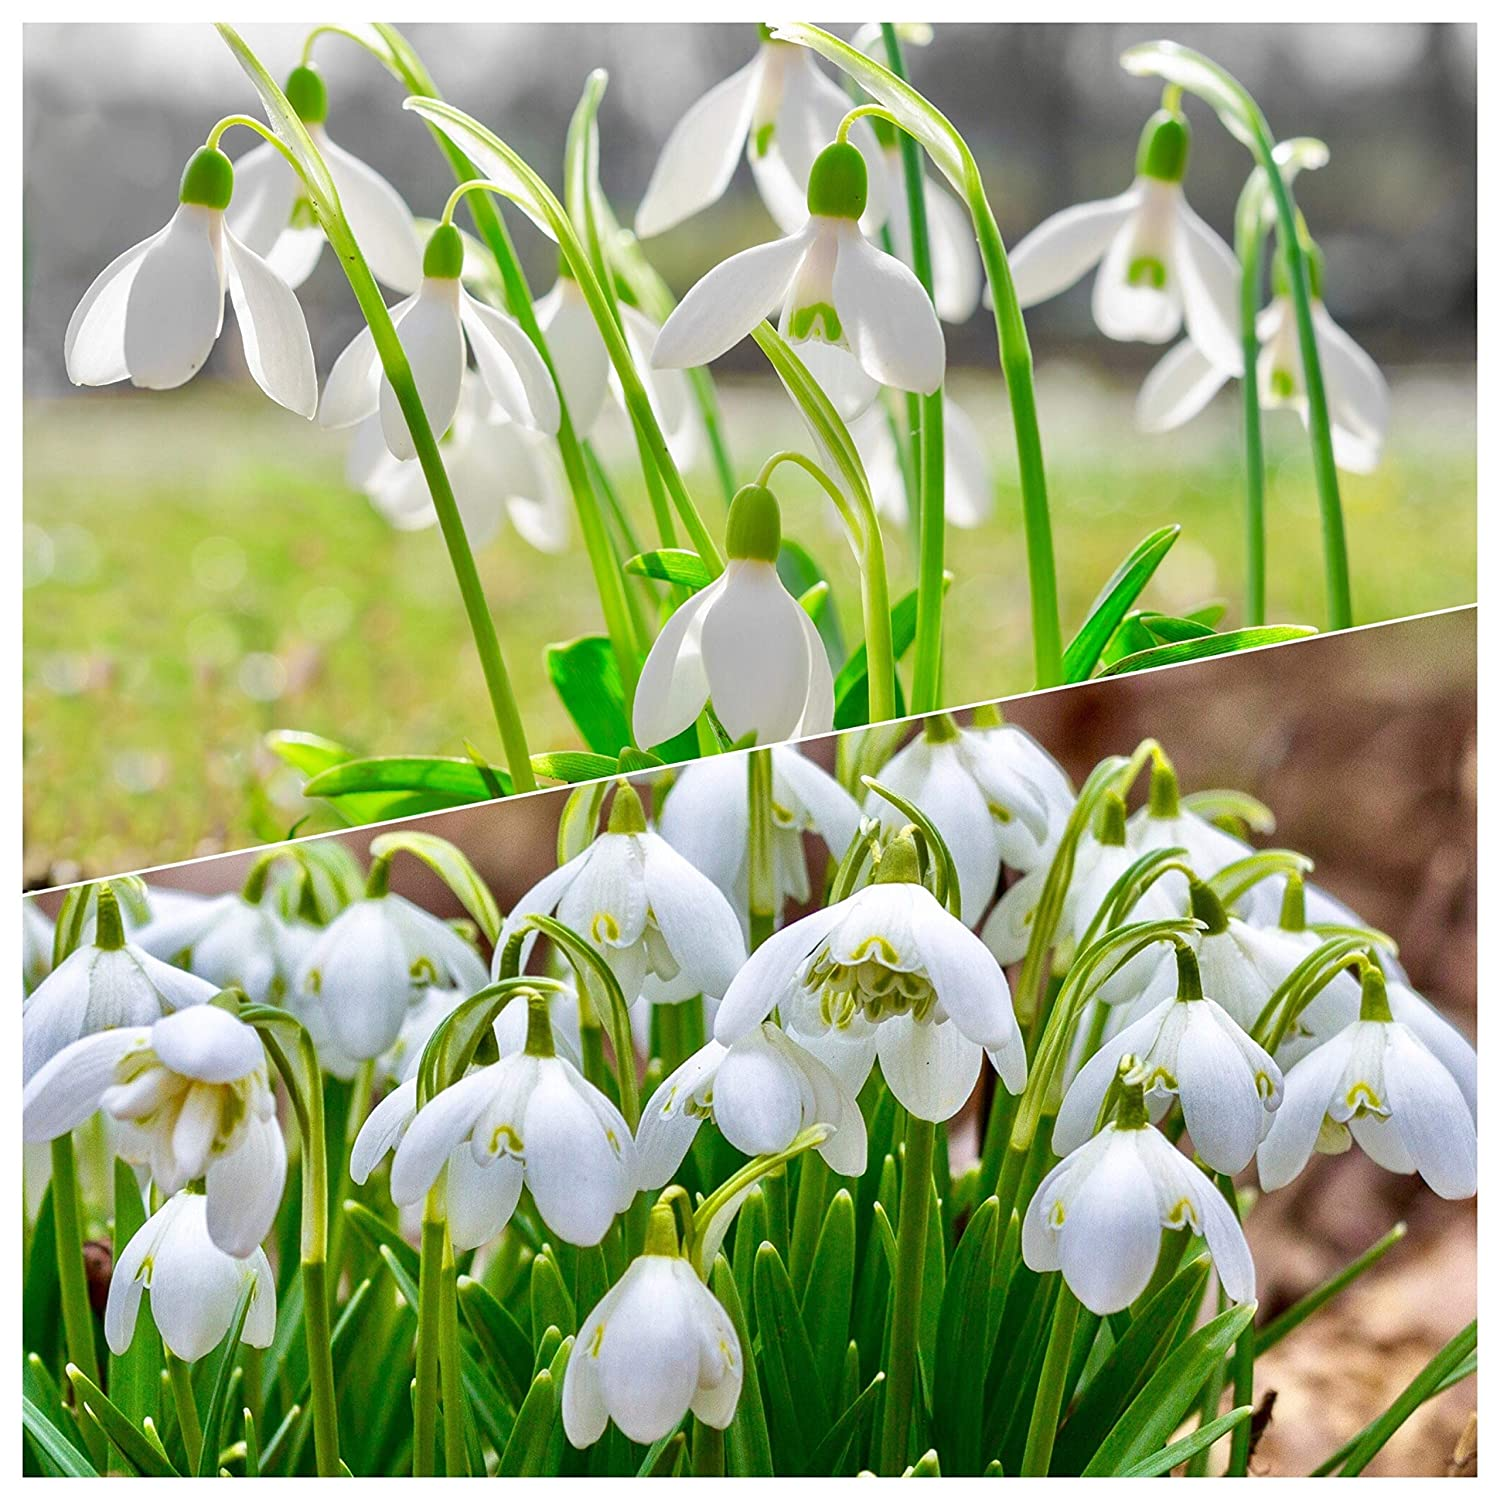 50 SINGLE & 50 DOUBLE SNOWDROP BULBS Freshly-Lifted Bulbs, (SPECIAL OFFER) For A Limited Time Only Don't Miss Out!! (100 Bulbs Ready To Plant) Woodland bulbs